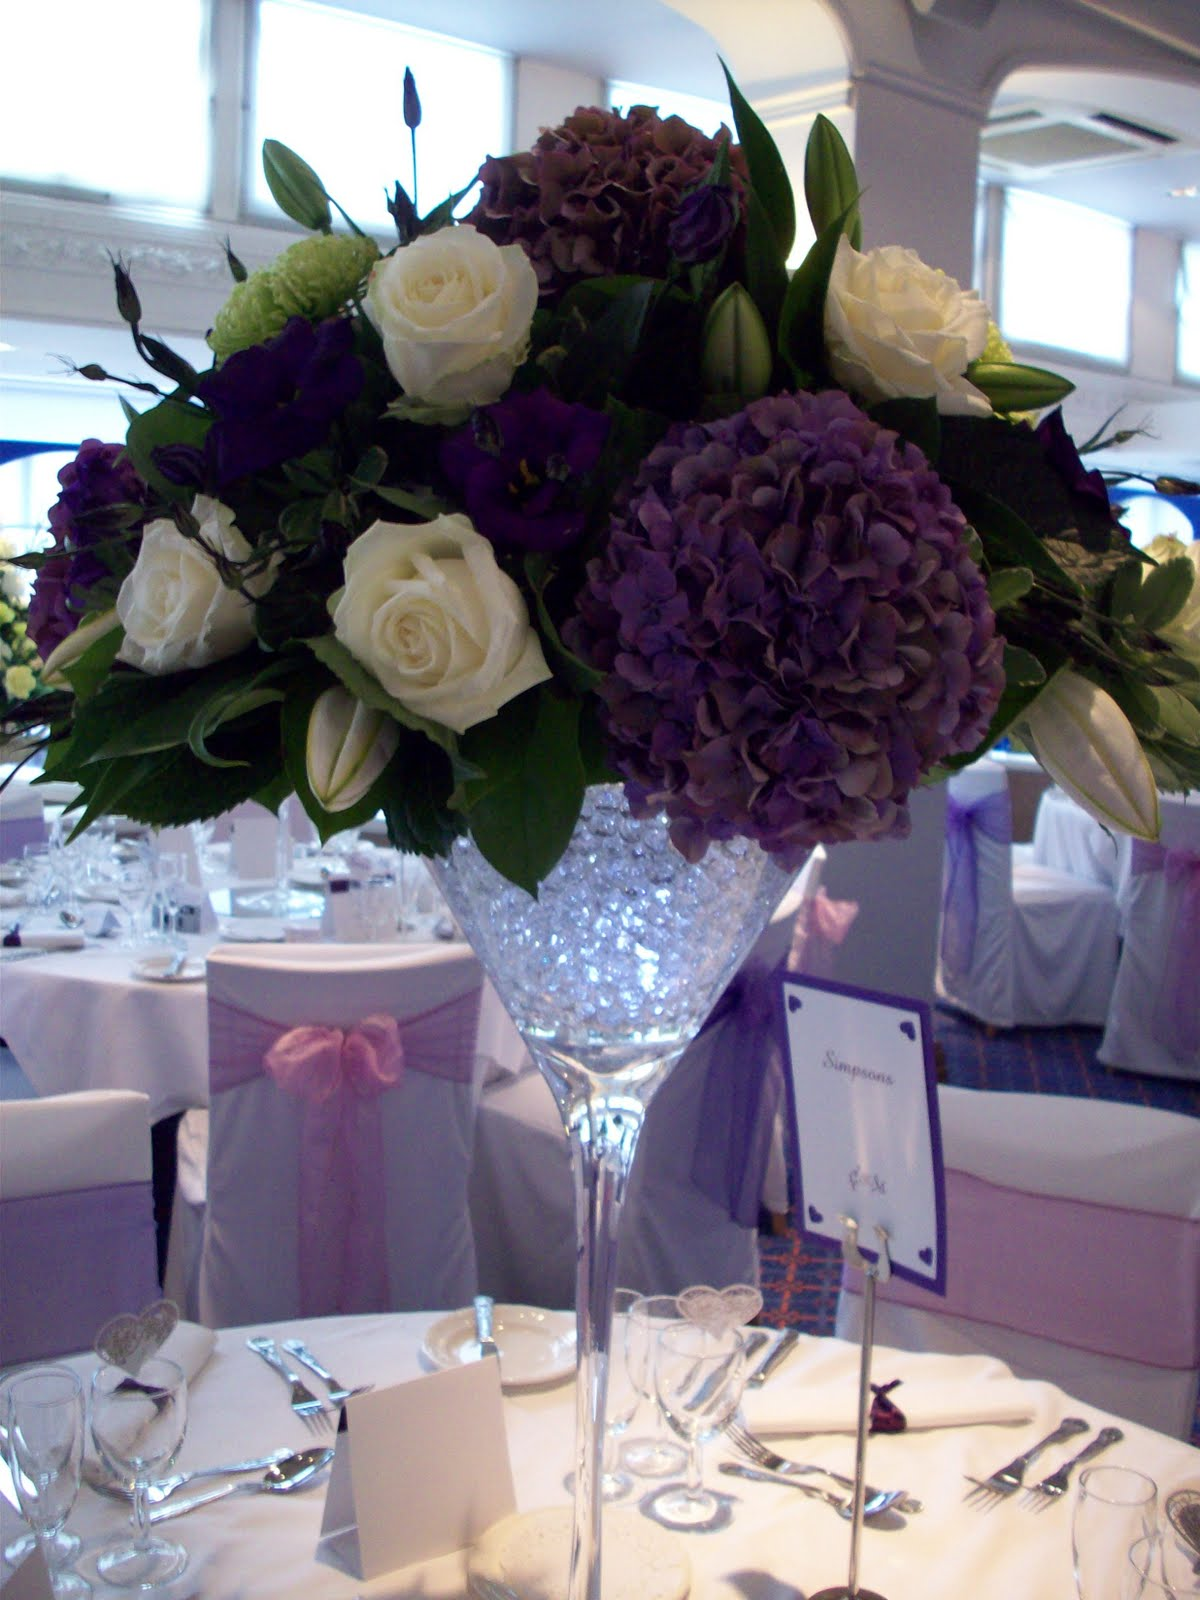 Florian designer florist wedding flower specialist purple plum martini vases filled with light sparkled pearls held huge domes of flowers with amazing coloured mottled hydrangeas that blended all the shades of purple reviewsmspy